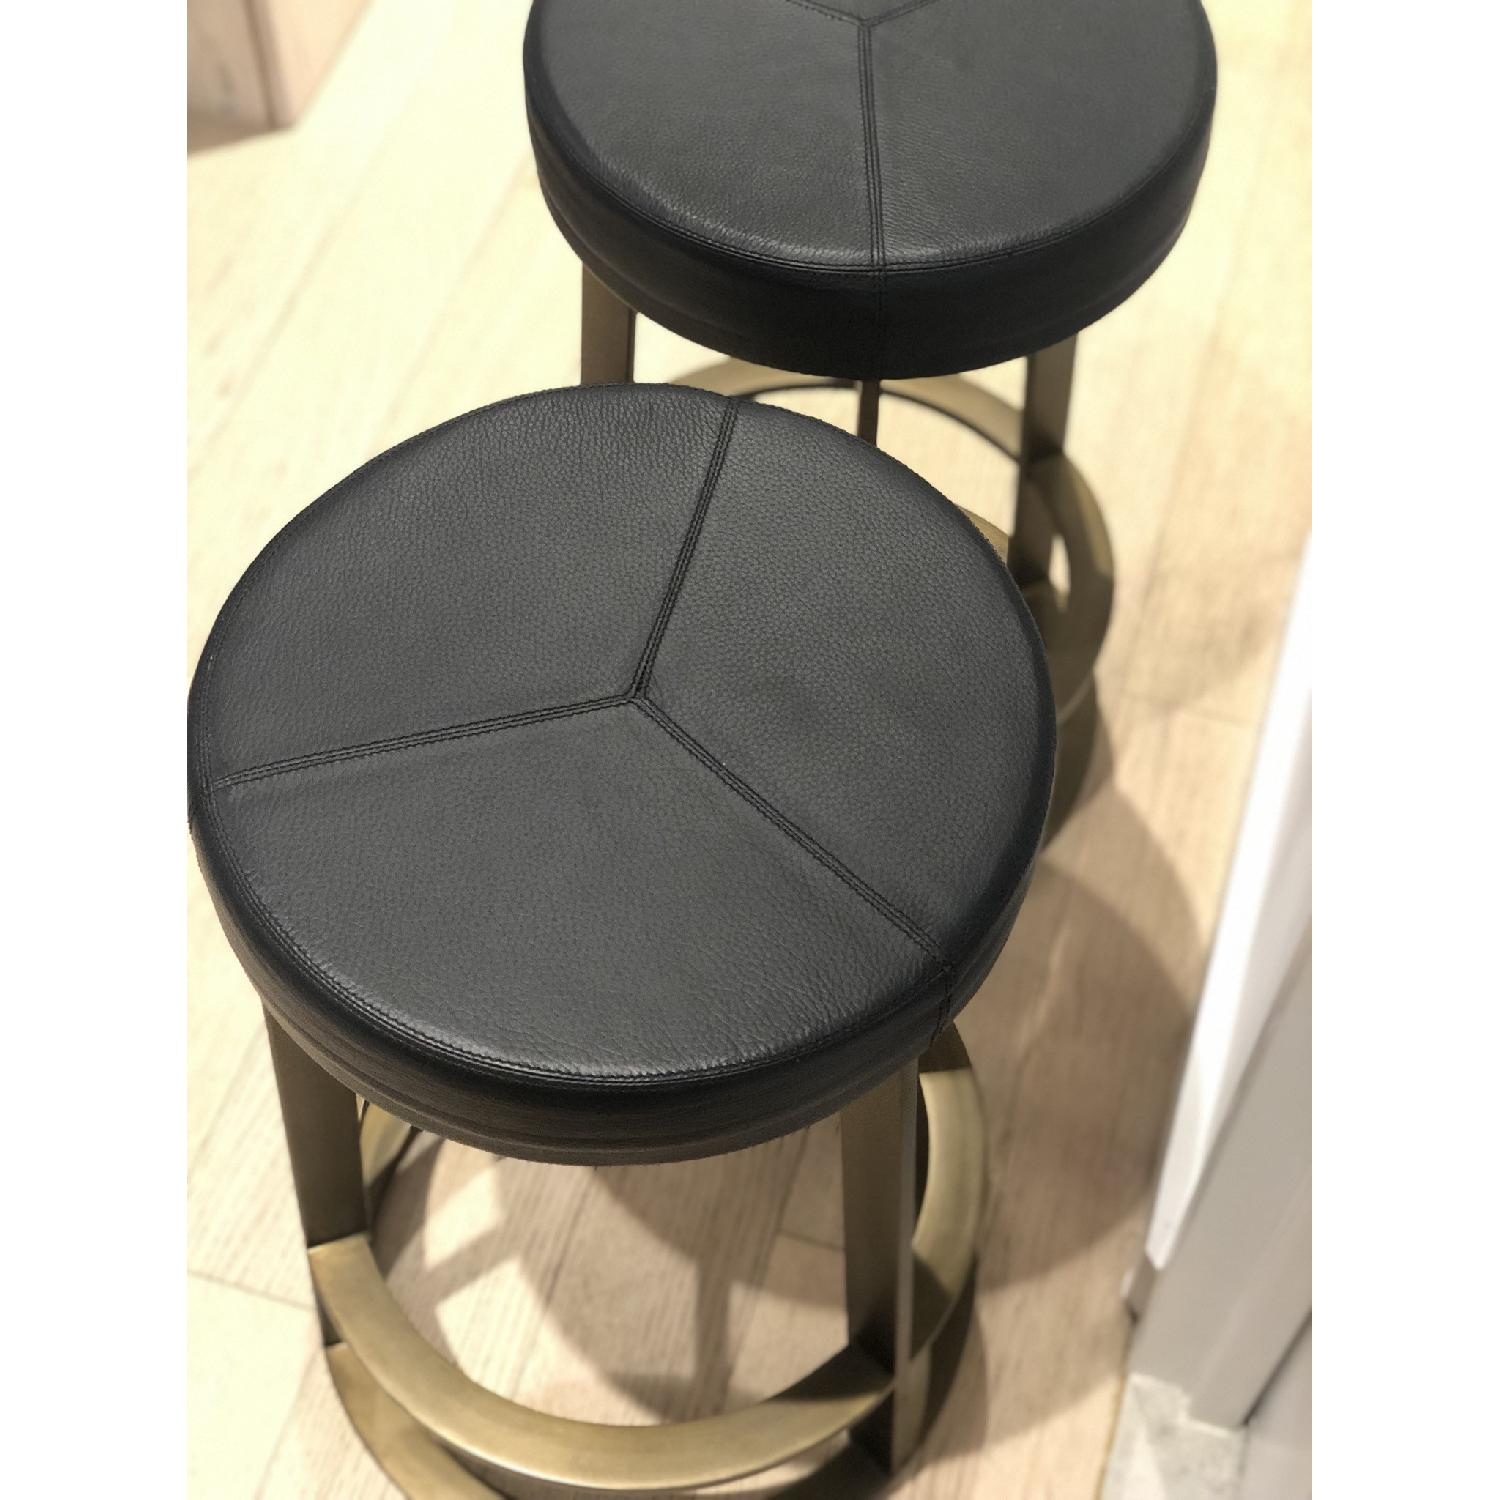 CB2 Leather Reverb Stools - image-4